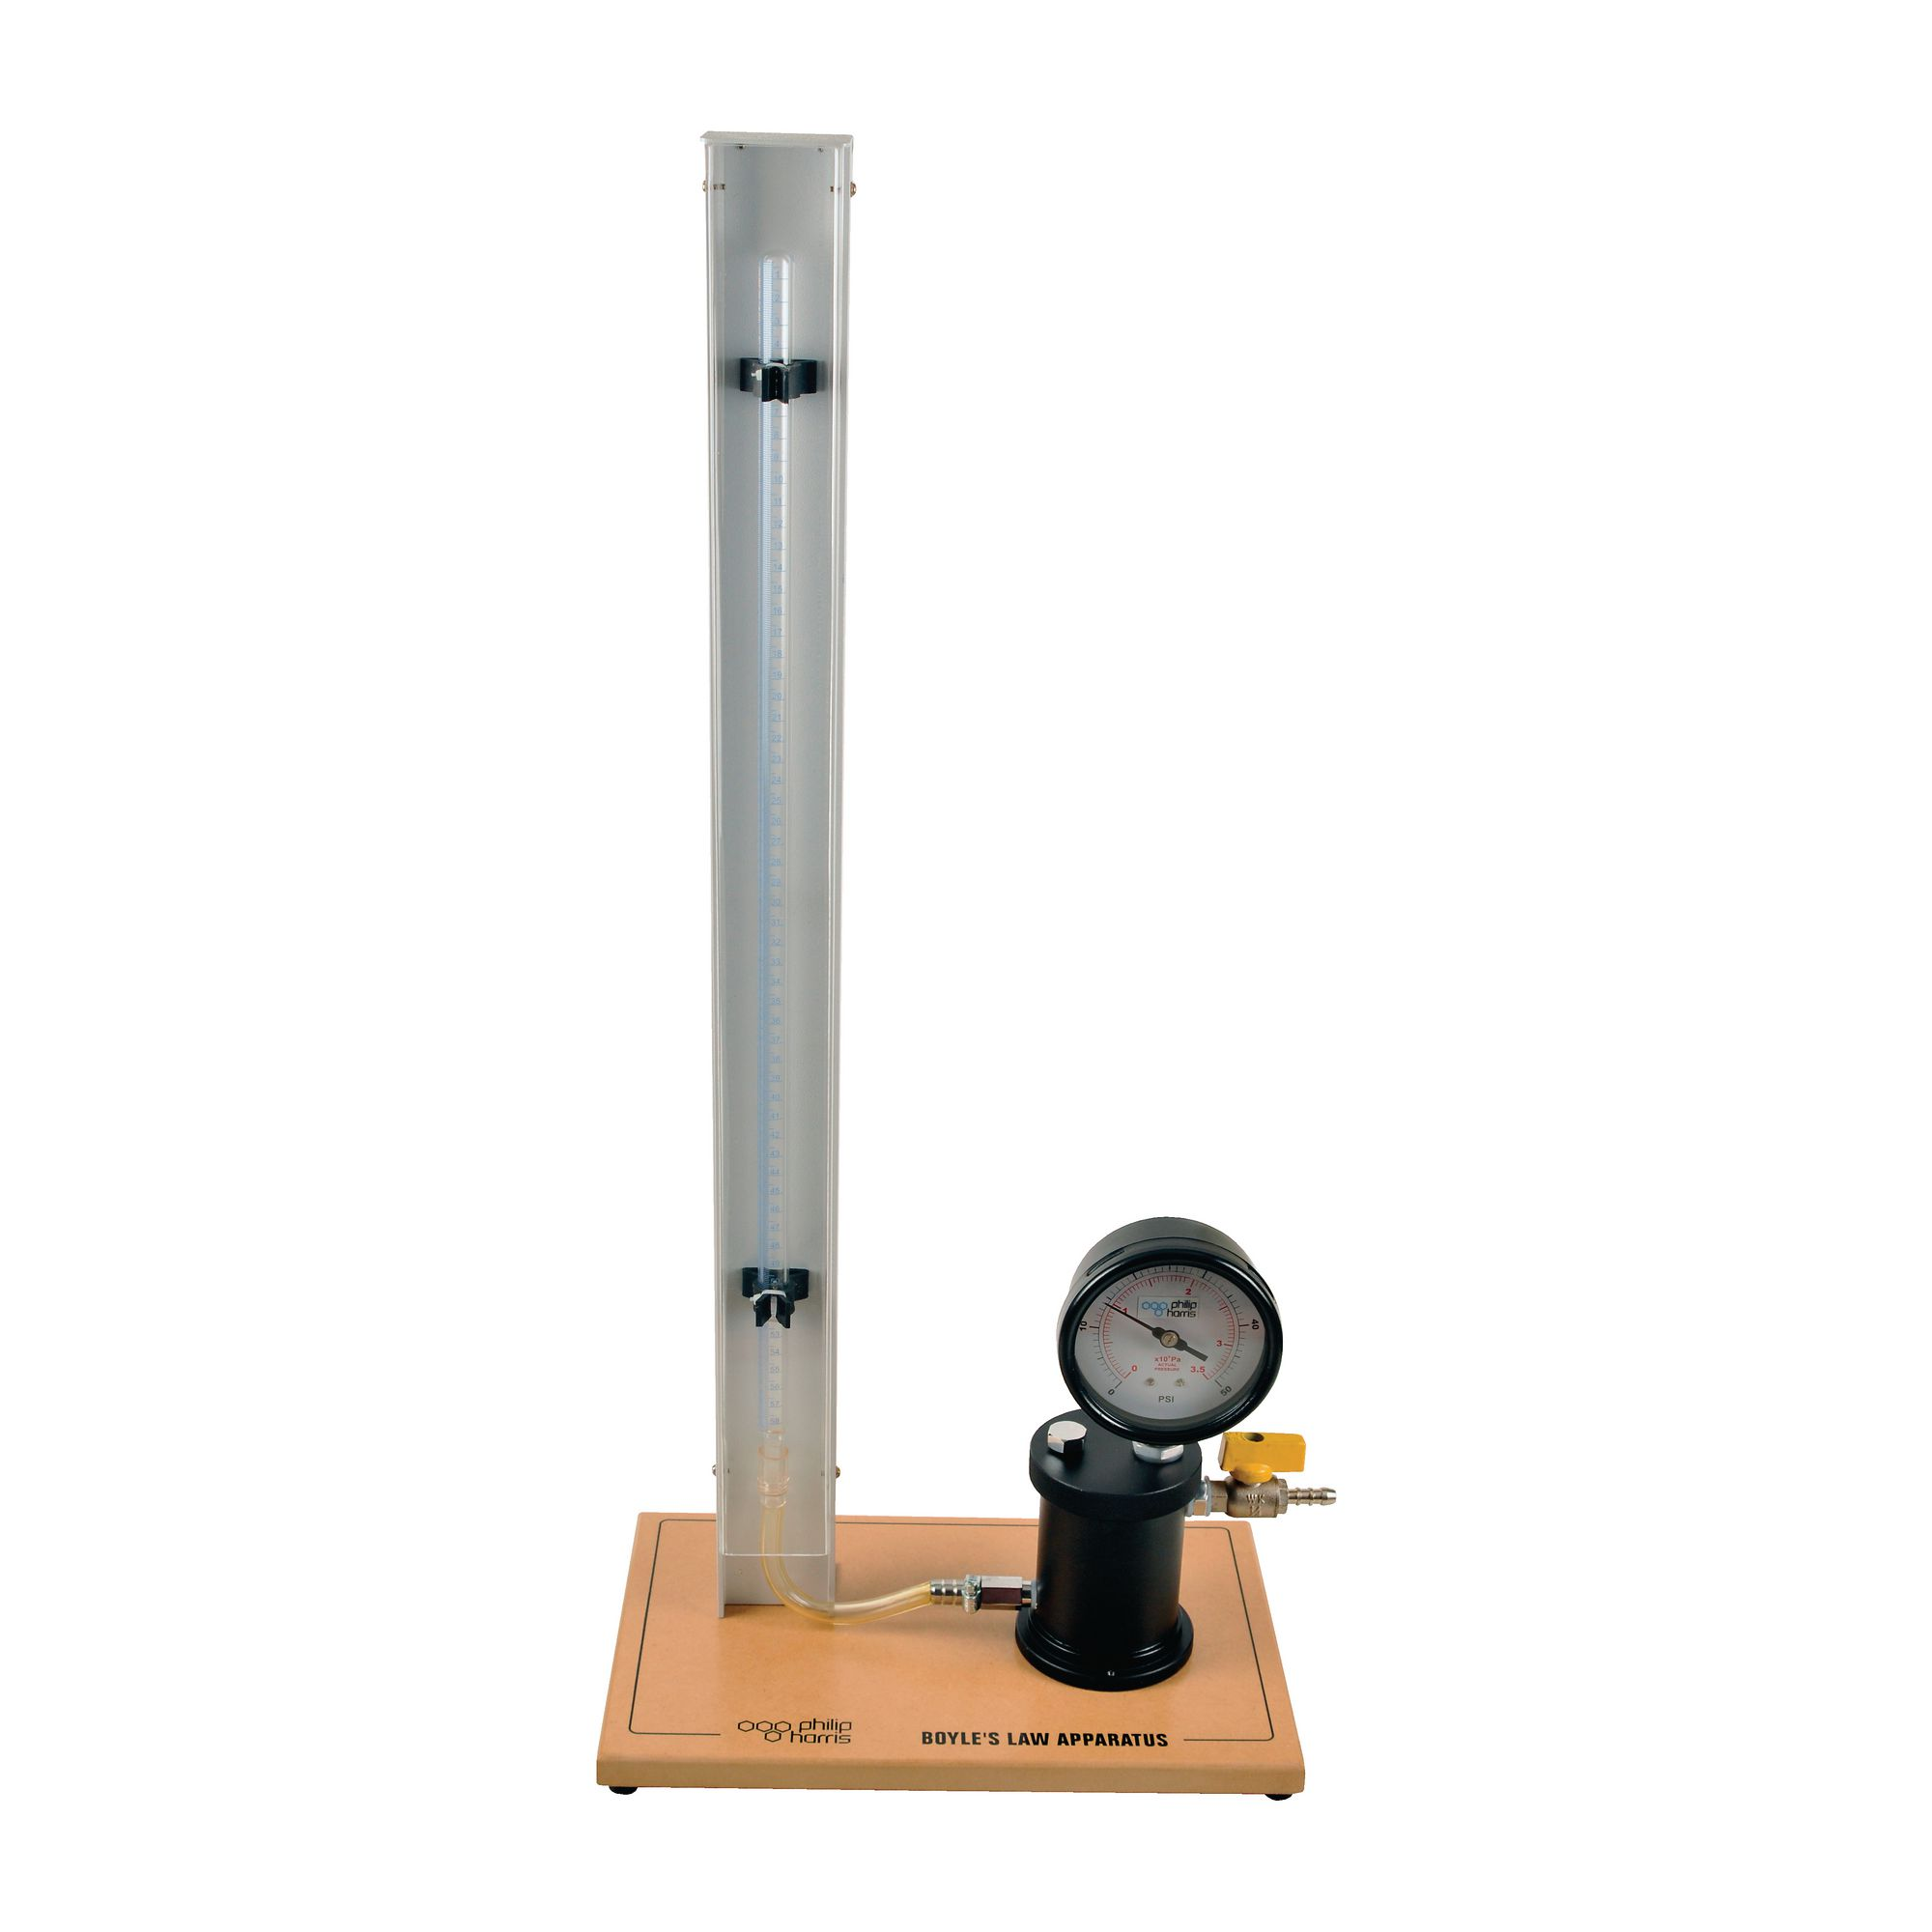 boyles law apparatus Description for obtaining precise readings of volume of a gas for a range of pressures the apparatus consists of two borosilicate glass tubes, closed at the top and.